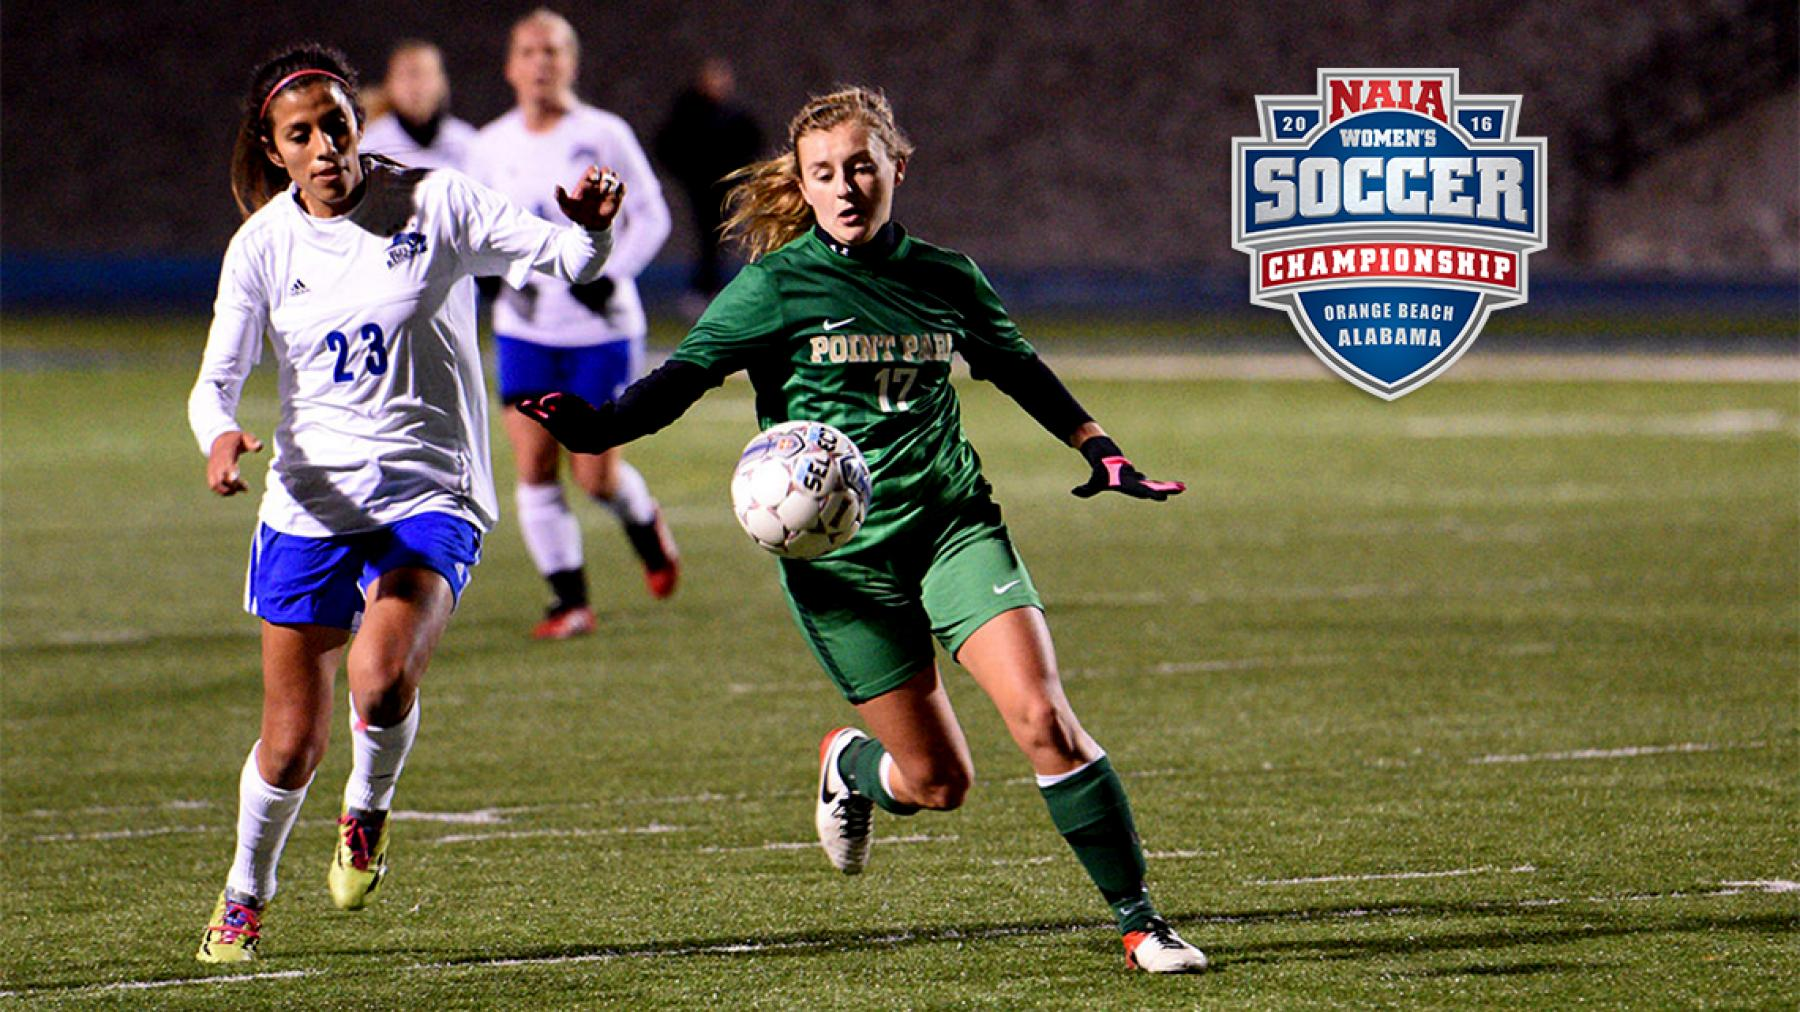 Point Park women's soccer comes up short against No. 2 Lindsey Wilson (Ky.)